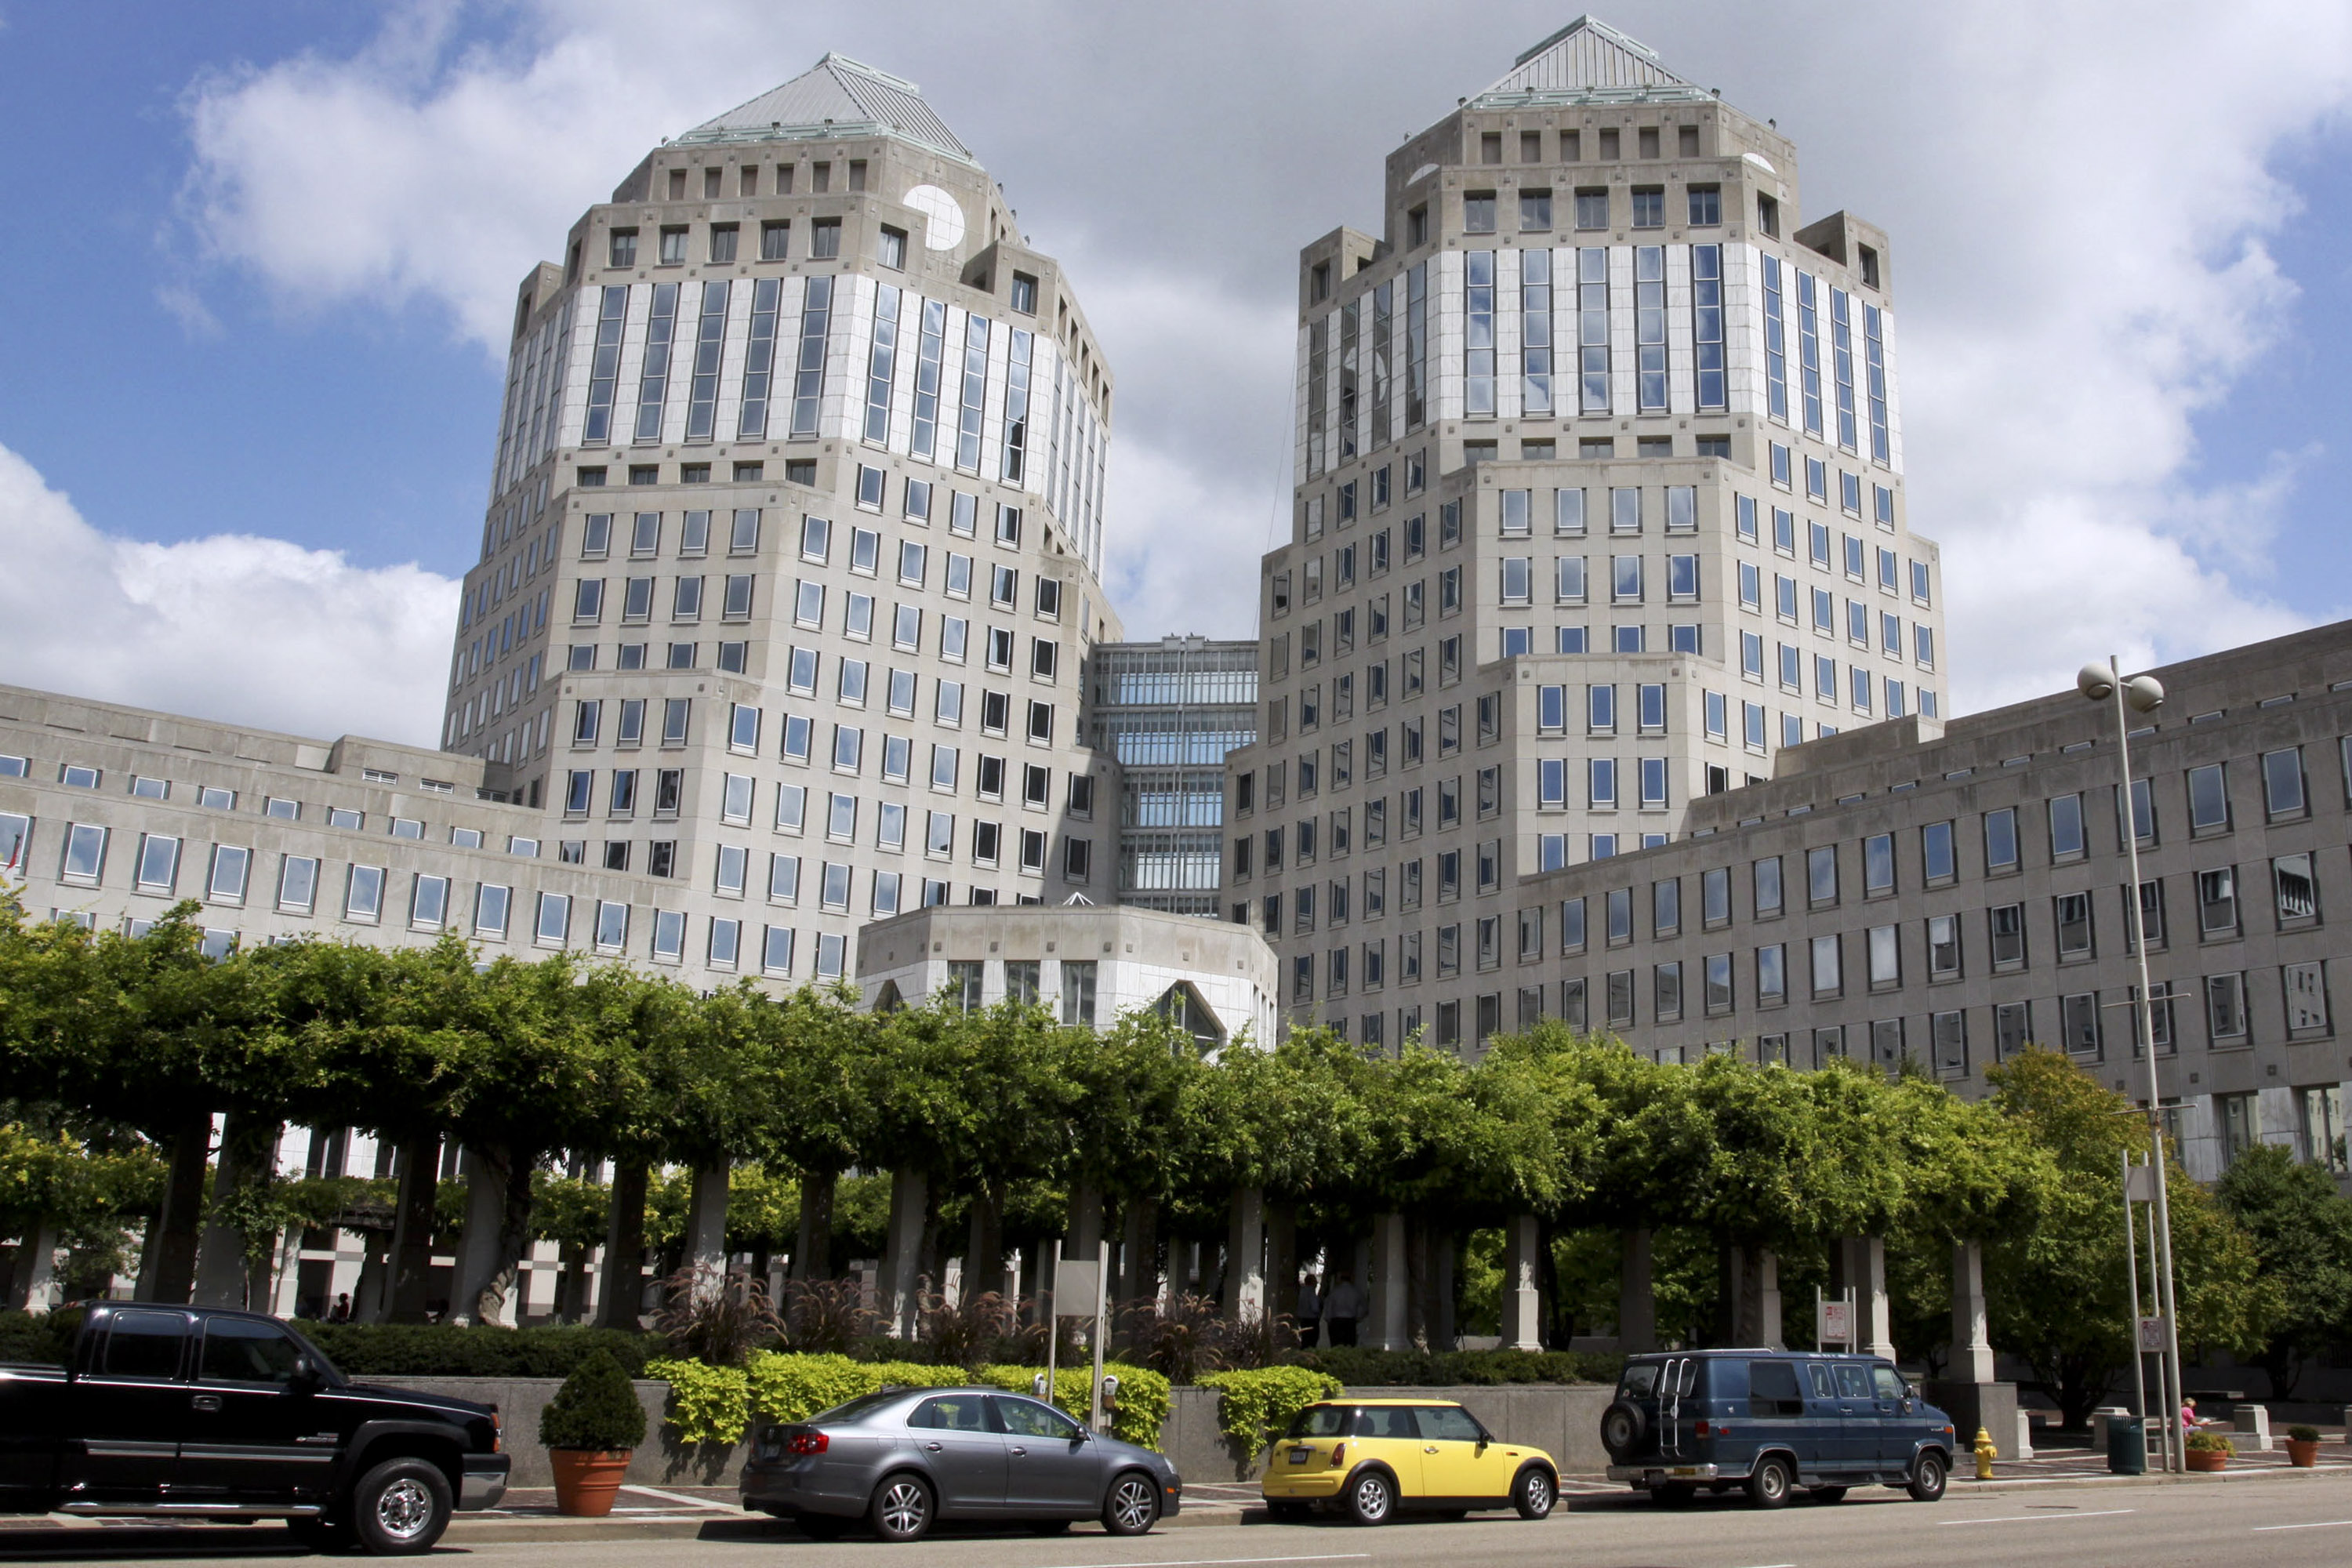 The headquarters complex of Procter & Gamble